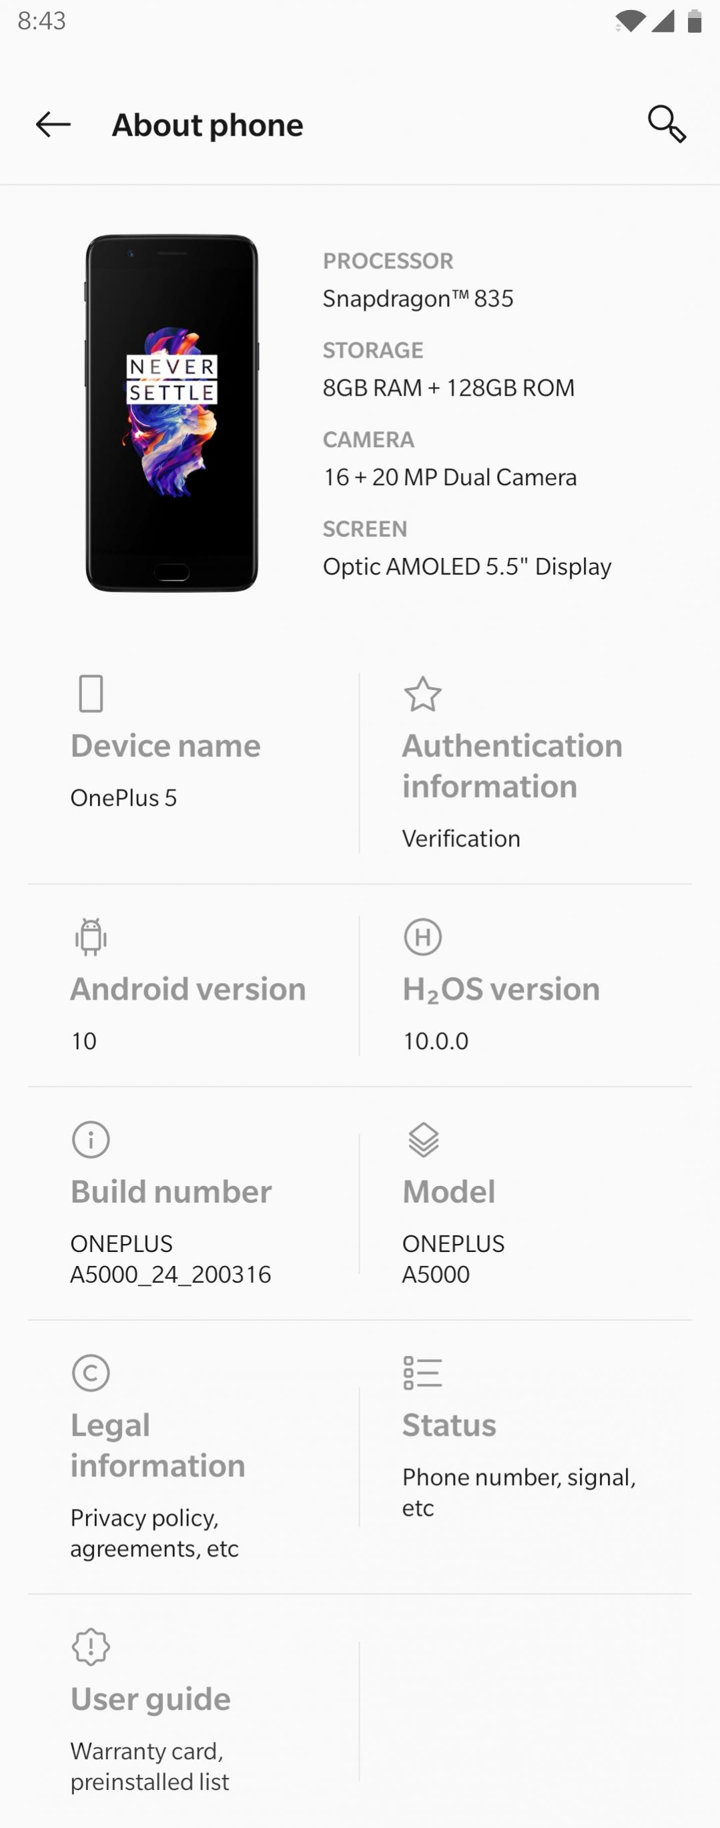 Android 10 for OnePlus 5 Screenshot